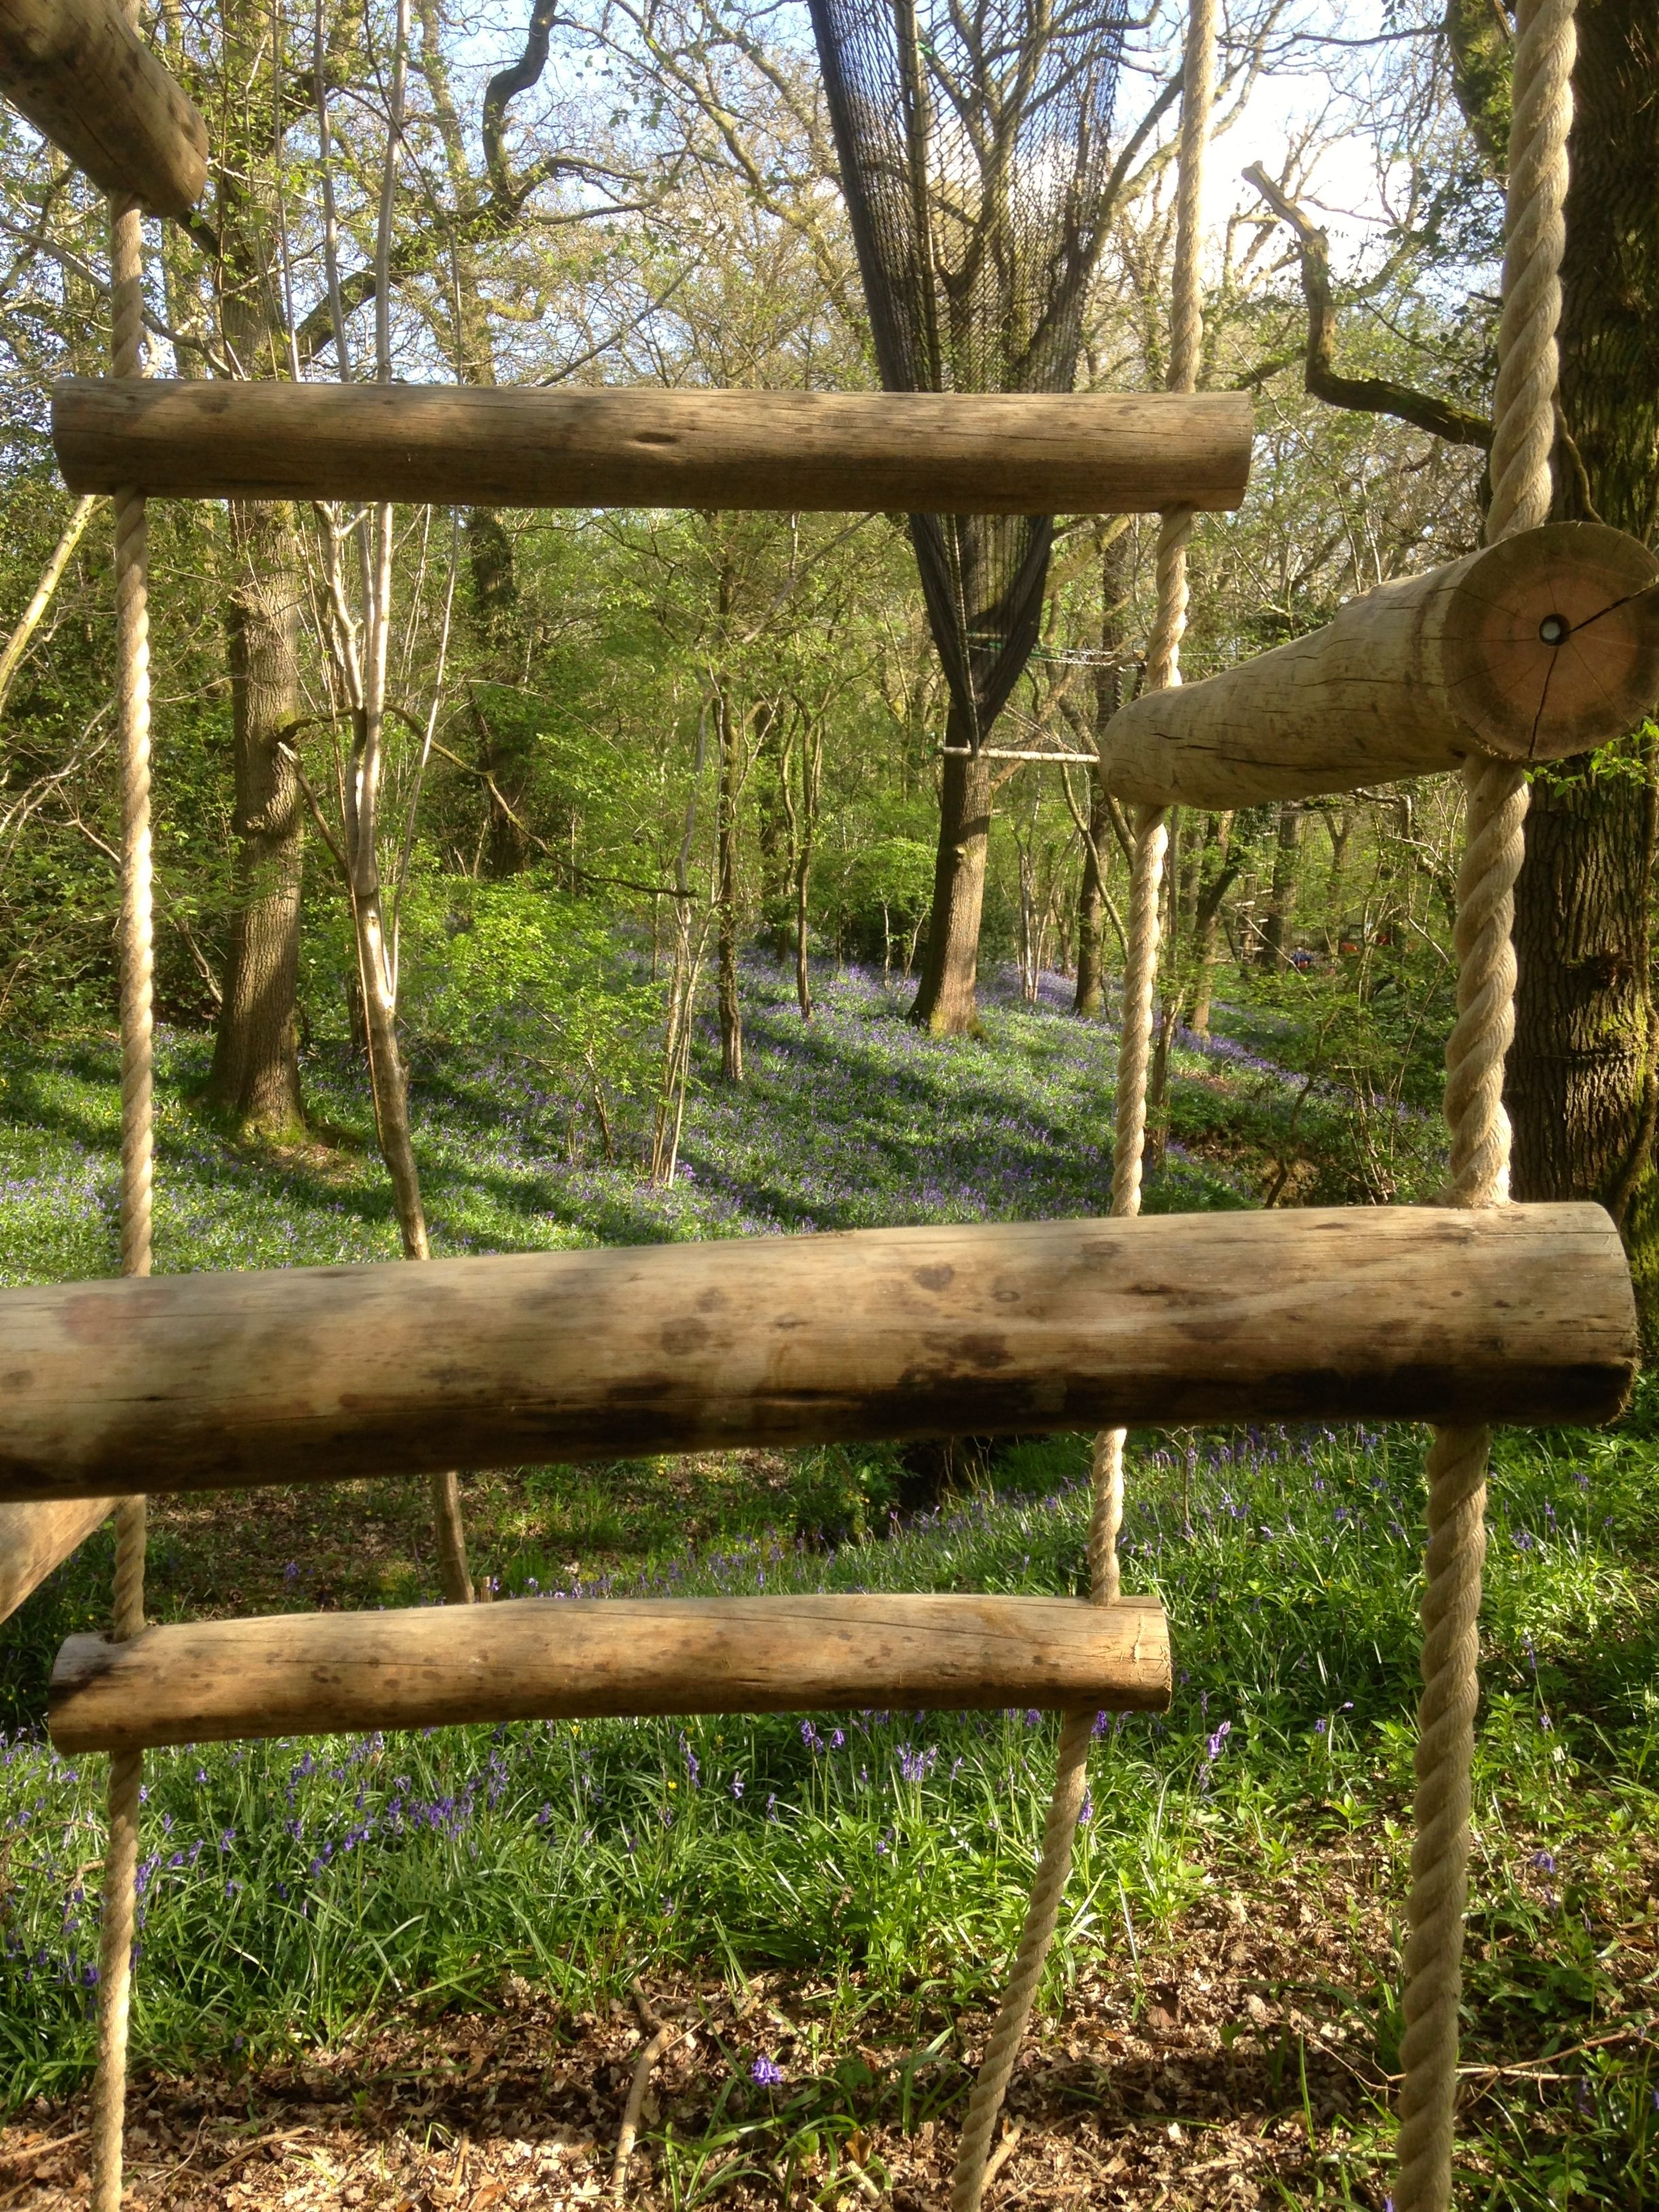 Eucalyptus 4 sided Rope Ladder in a beautiful